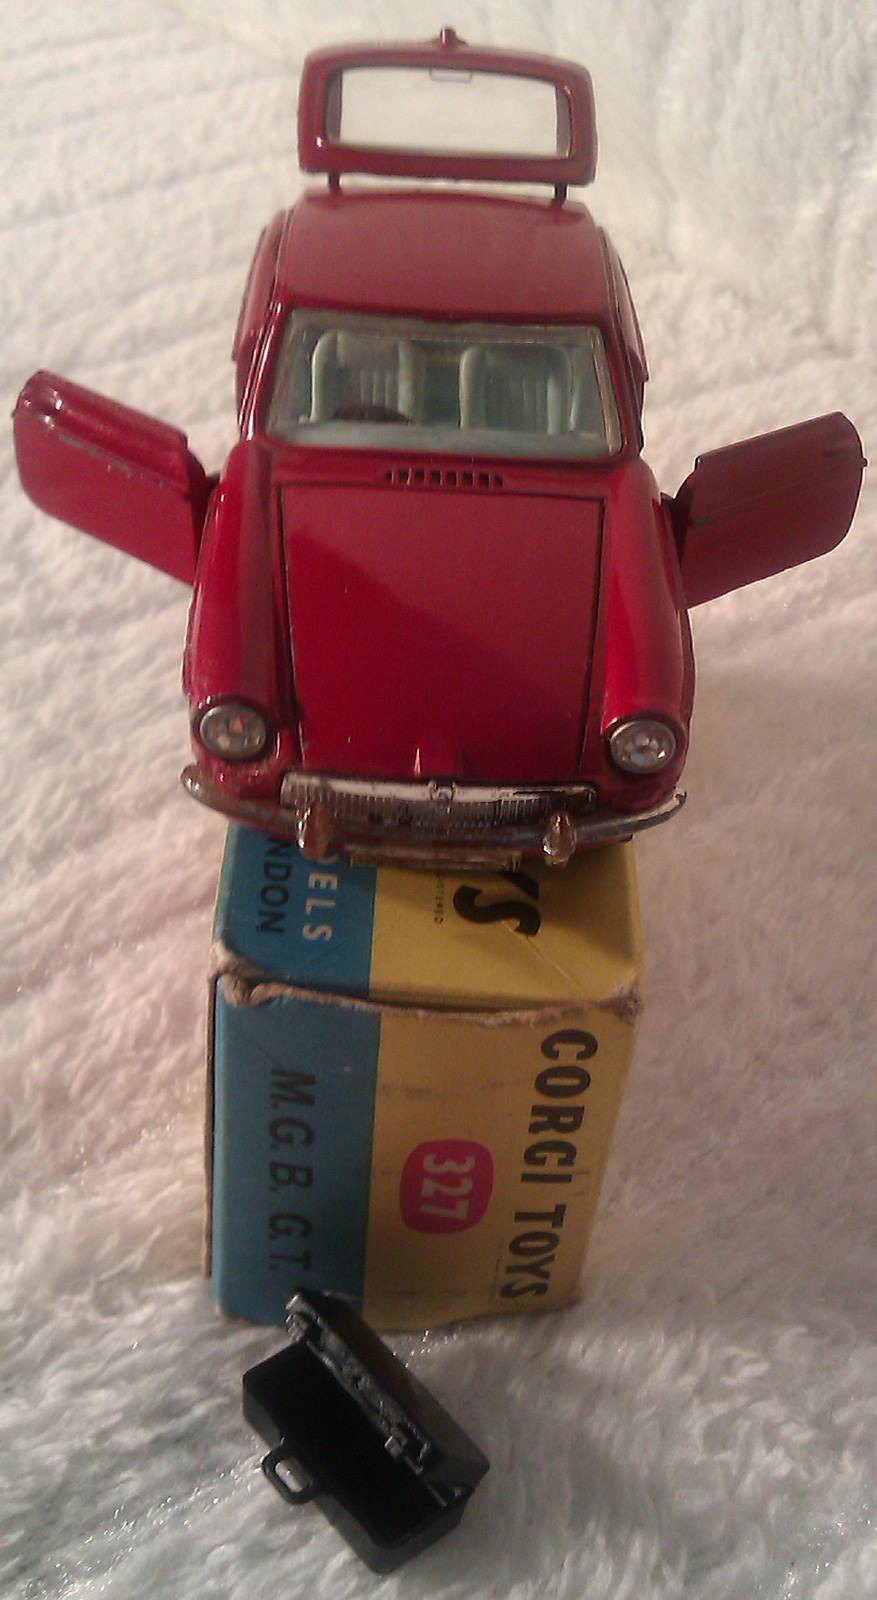 Vintage 1960s MGB GT Corgi Toy Car For Sale Model 327 Corgi Car with box